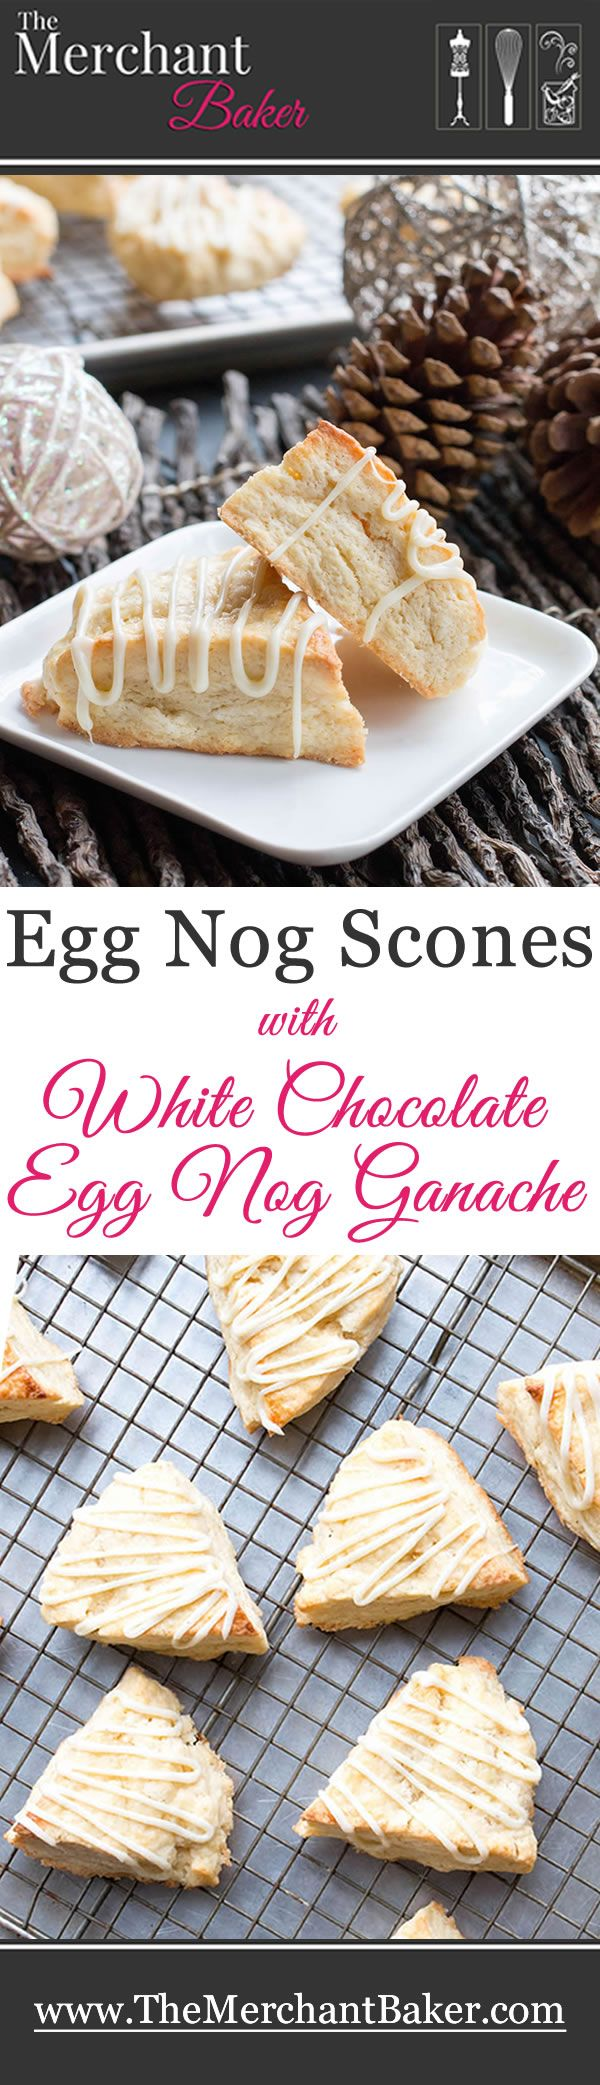 Egg Nog Scones with White Chocolate Egg Nog Ganache. Rich, buttery egg nog scones are drizzled with a creamy ganache & spiced with freshly grated nutmeg!